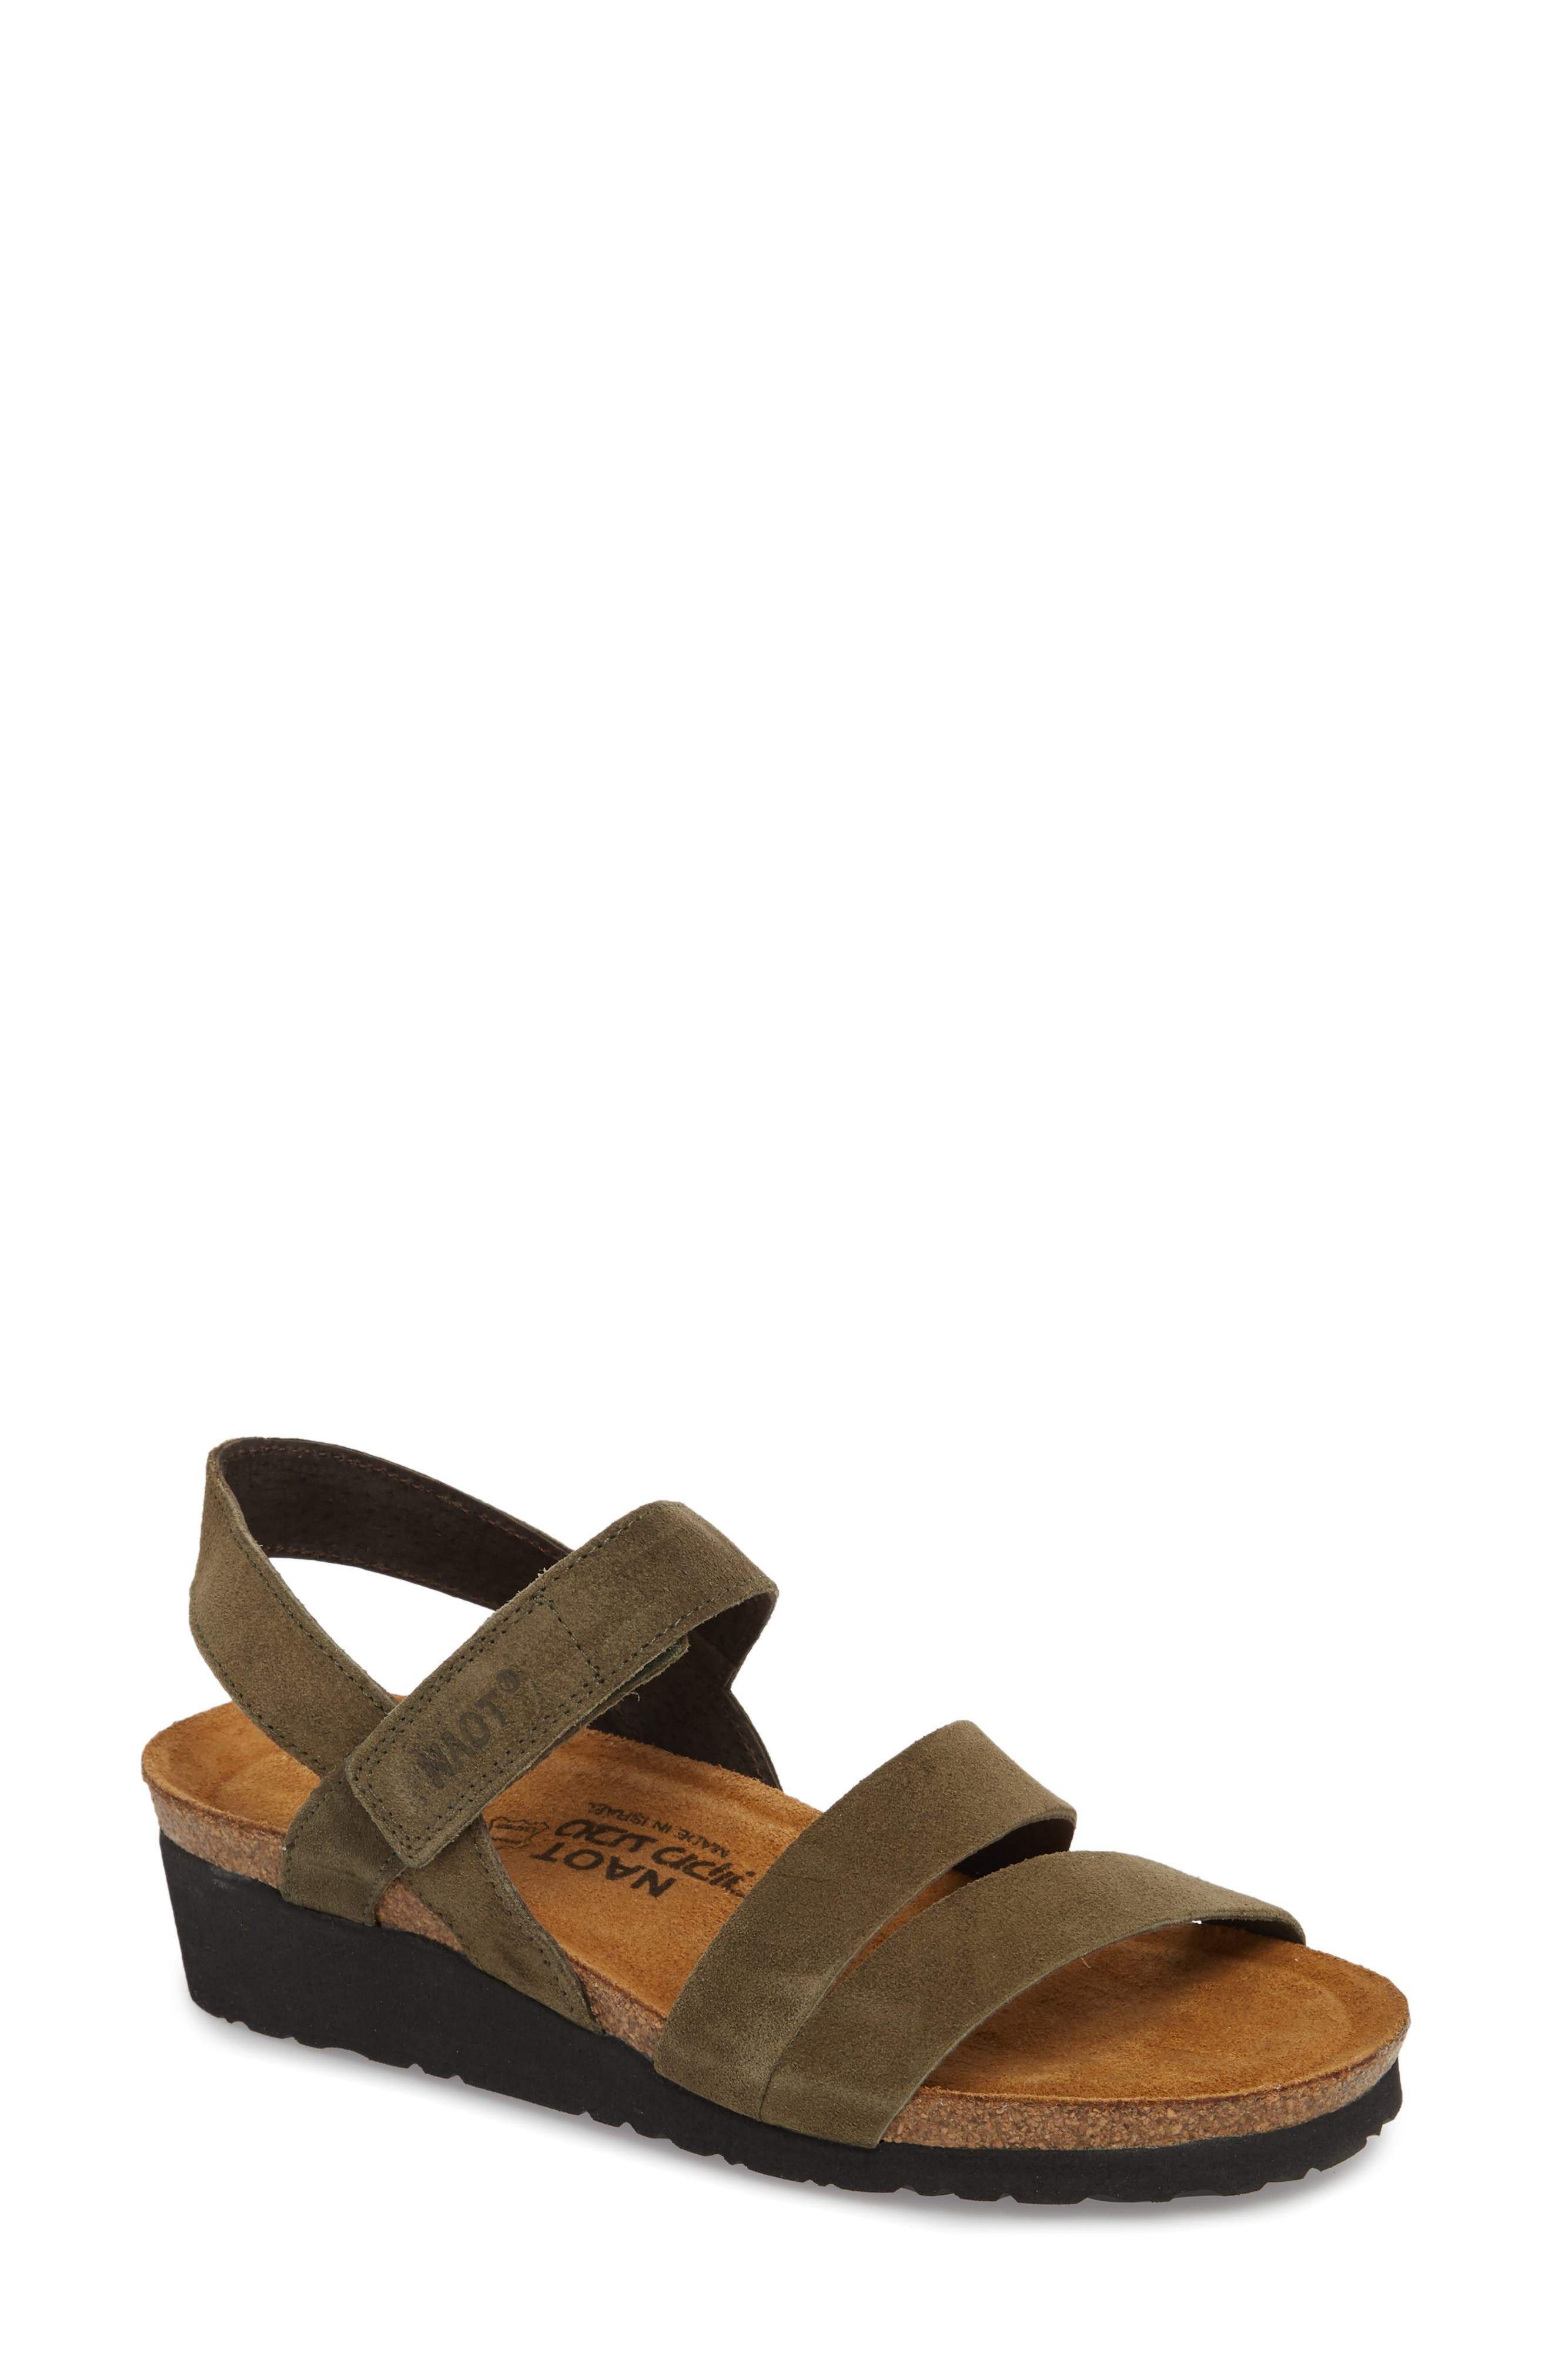 NAOT, 'Kayla' Sandal, Main thumbnail 1, color, OILY OLIVE SUEDE